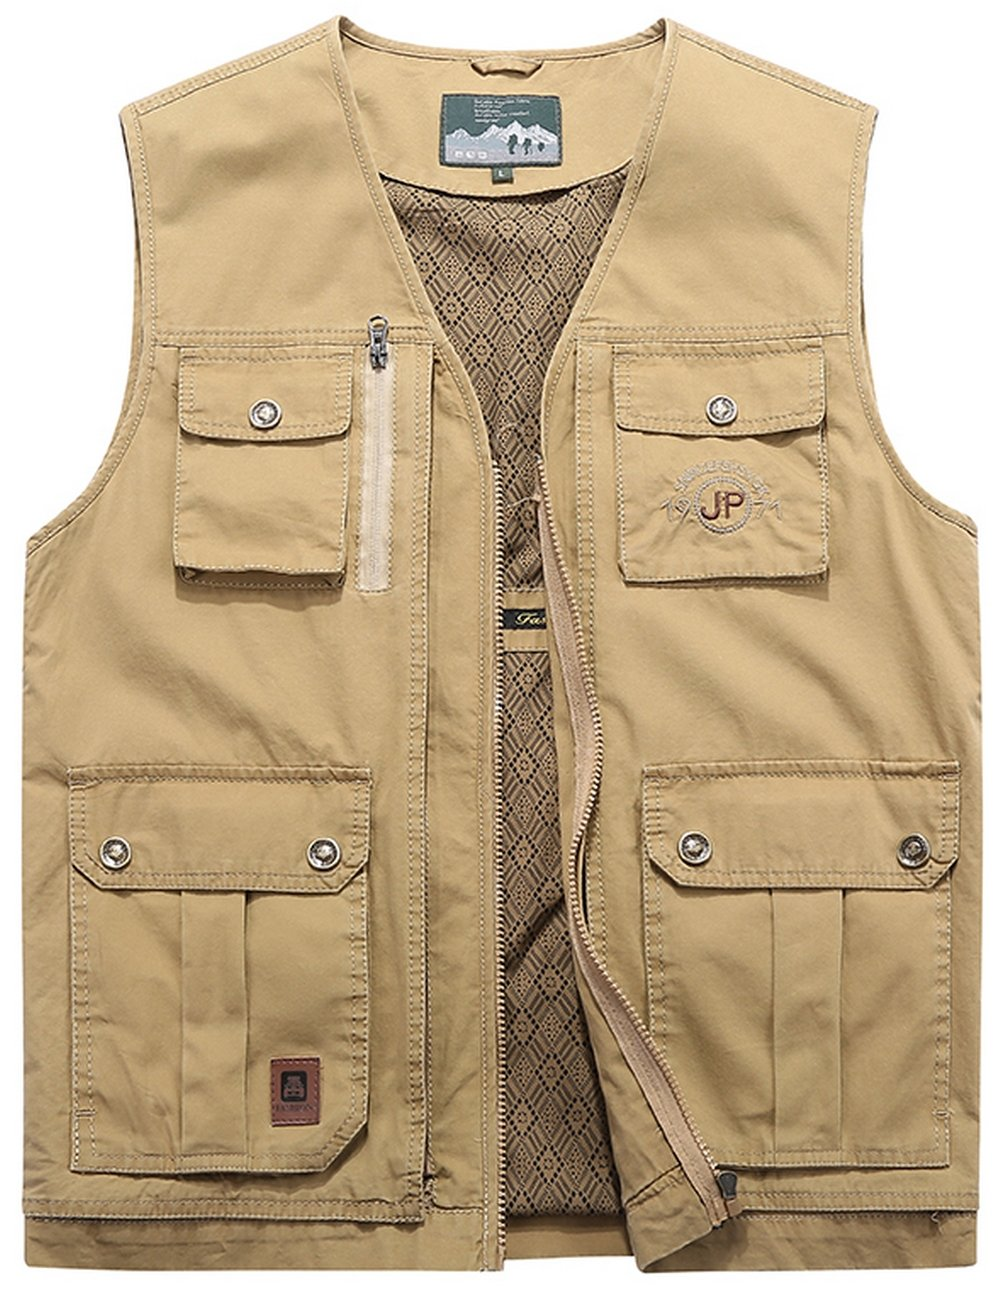 DHYZZ Men's Casual Big Capacity Multi Pocket Cotton Fishing Vest Outdoor Sports Waistcoat Oversize Gilet Lightweight Sleeveless Tops Jacket